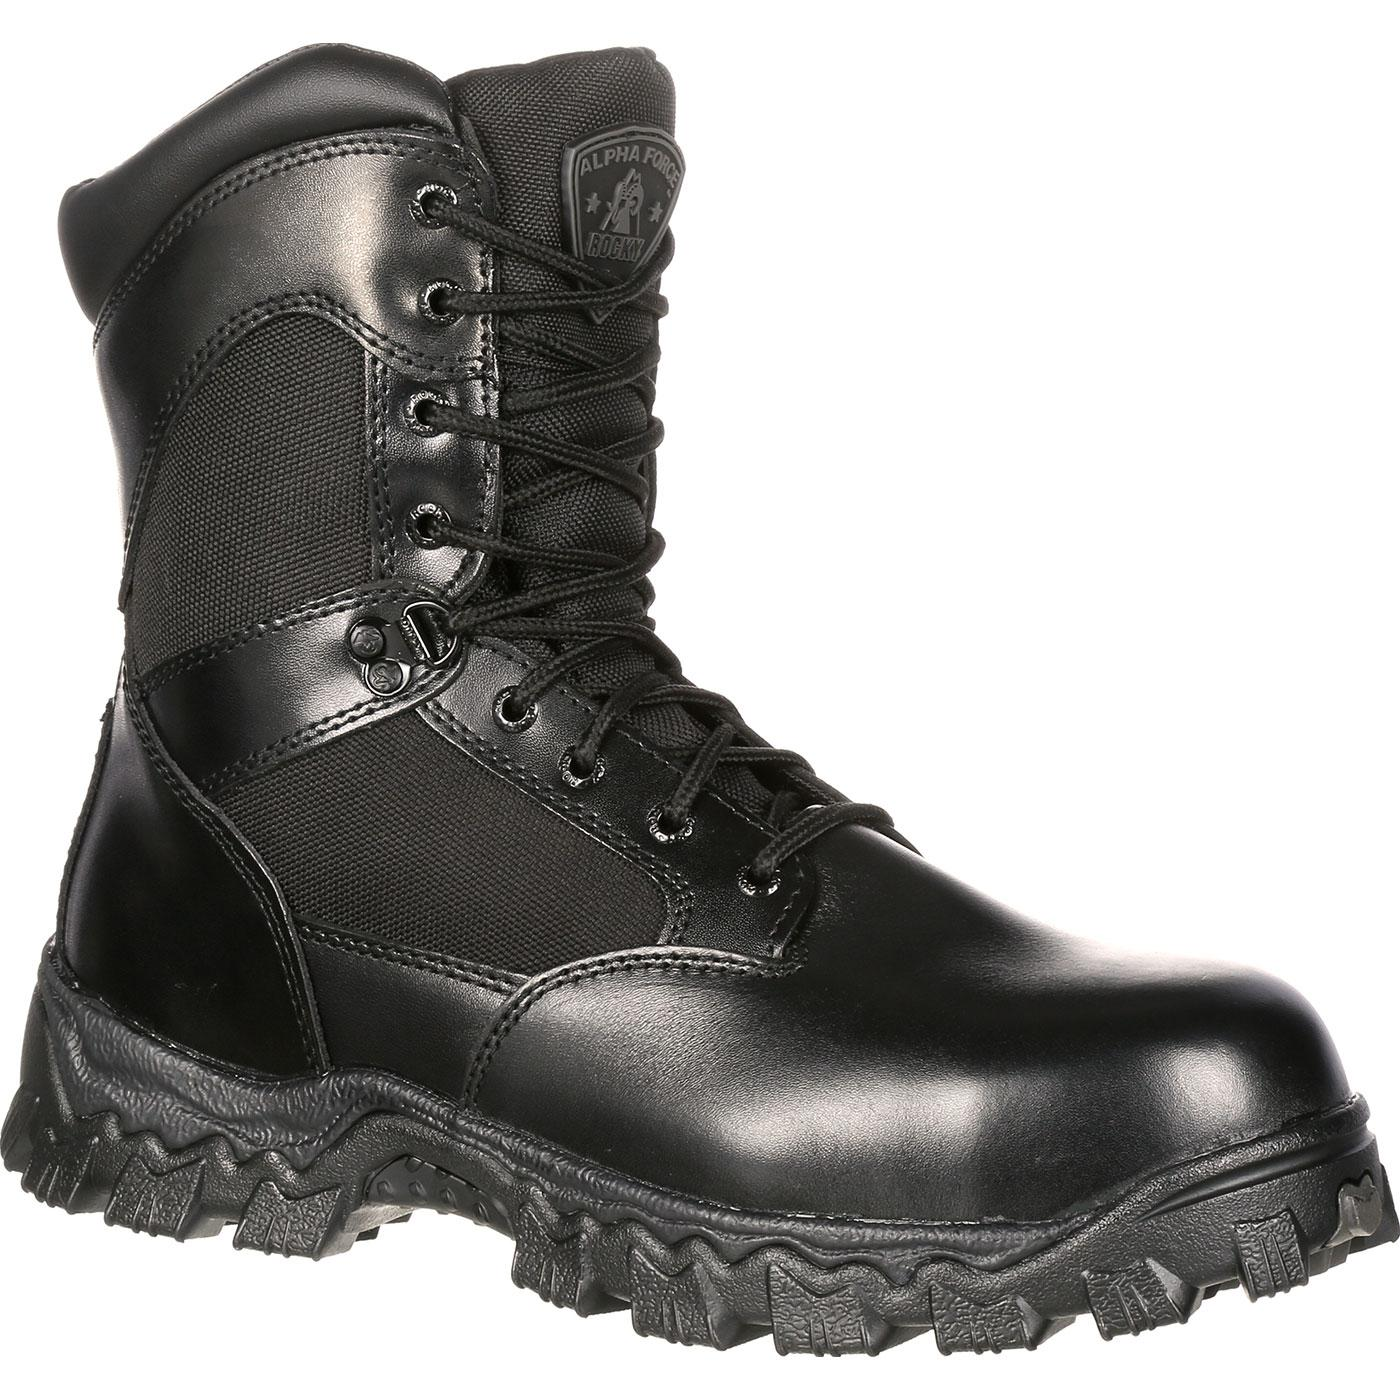 waterproof boots rocky alphaforce zipper waterproof duty boot, , large NCNXCXP